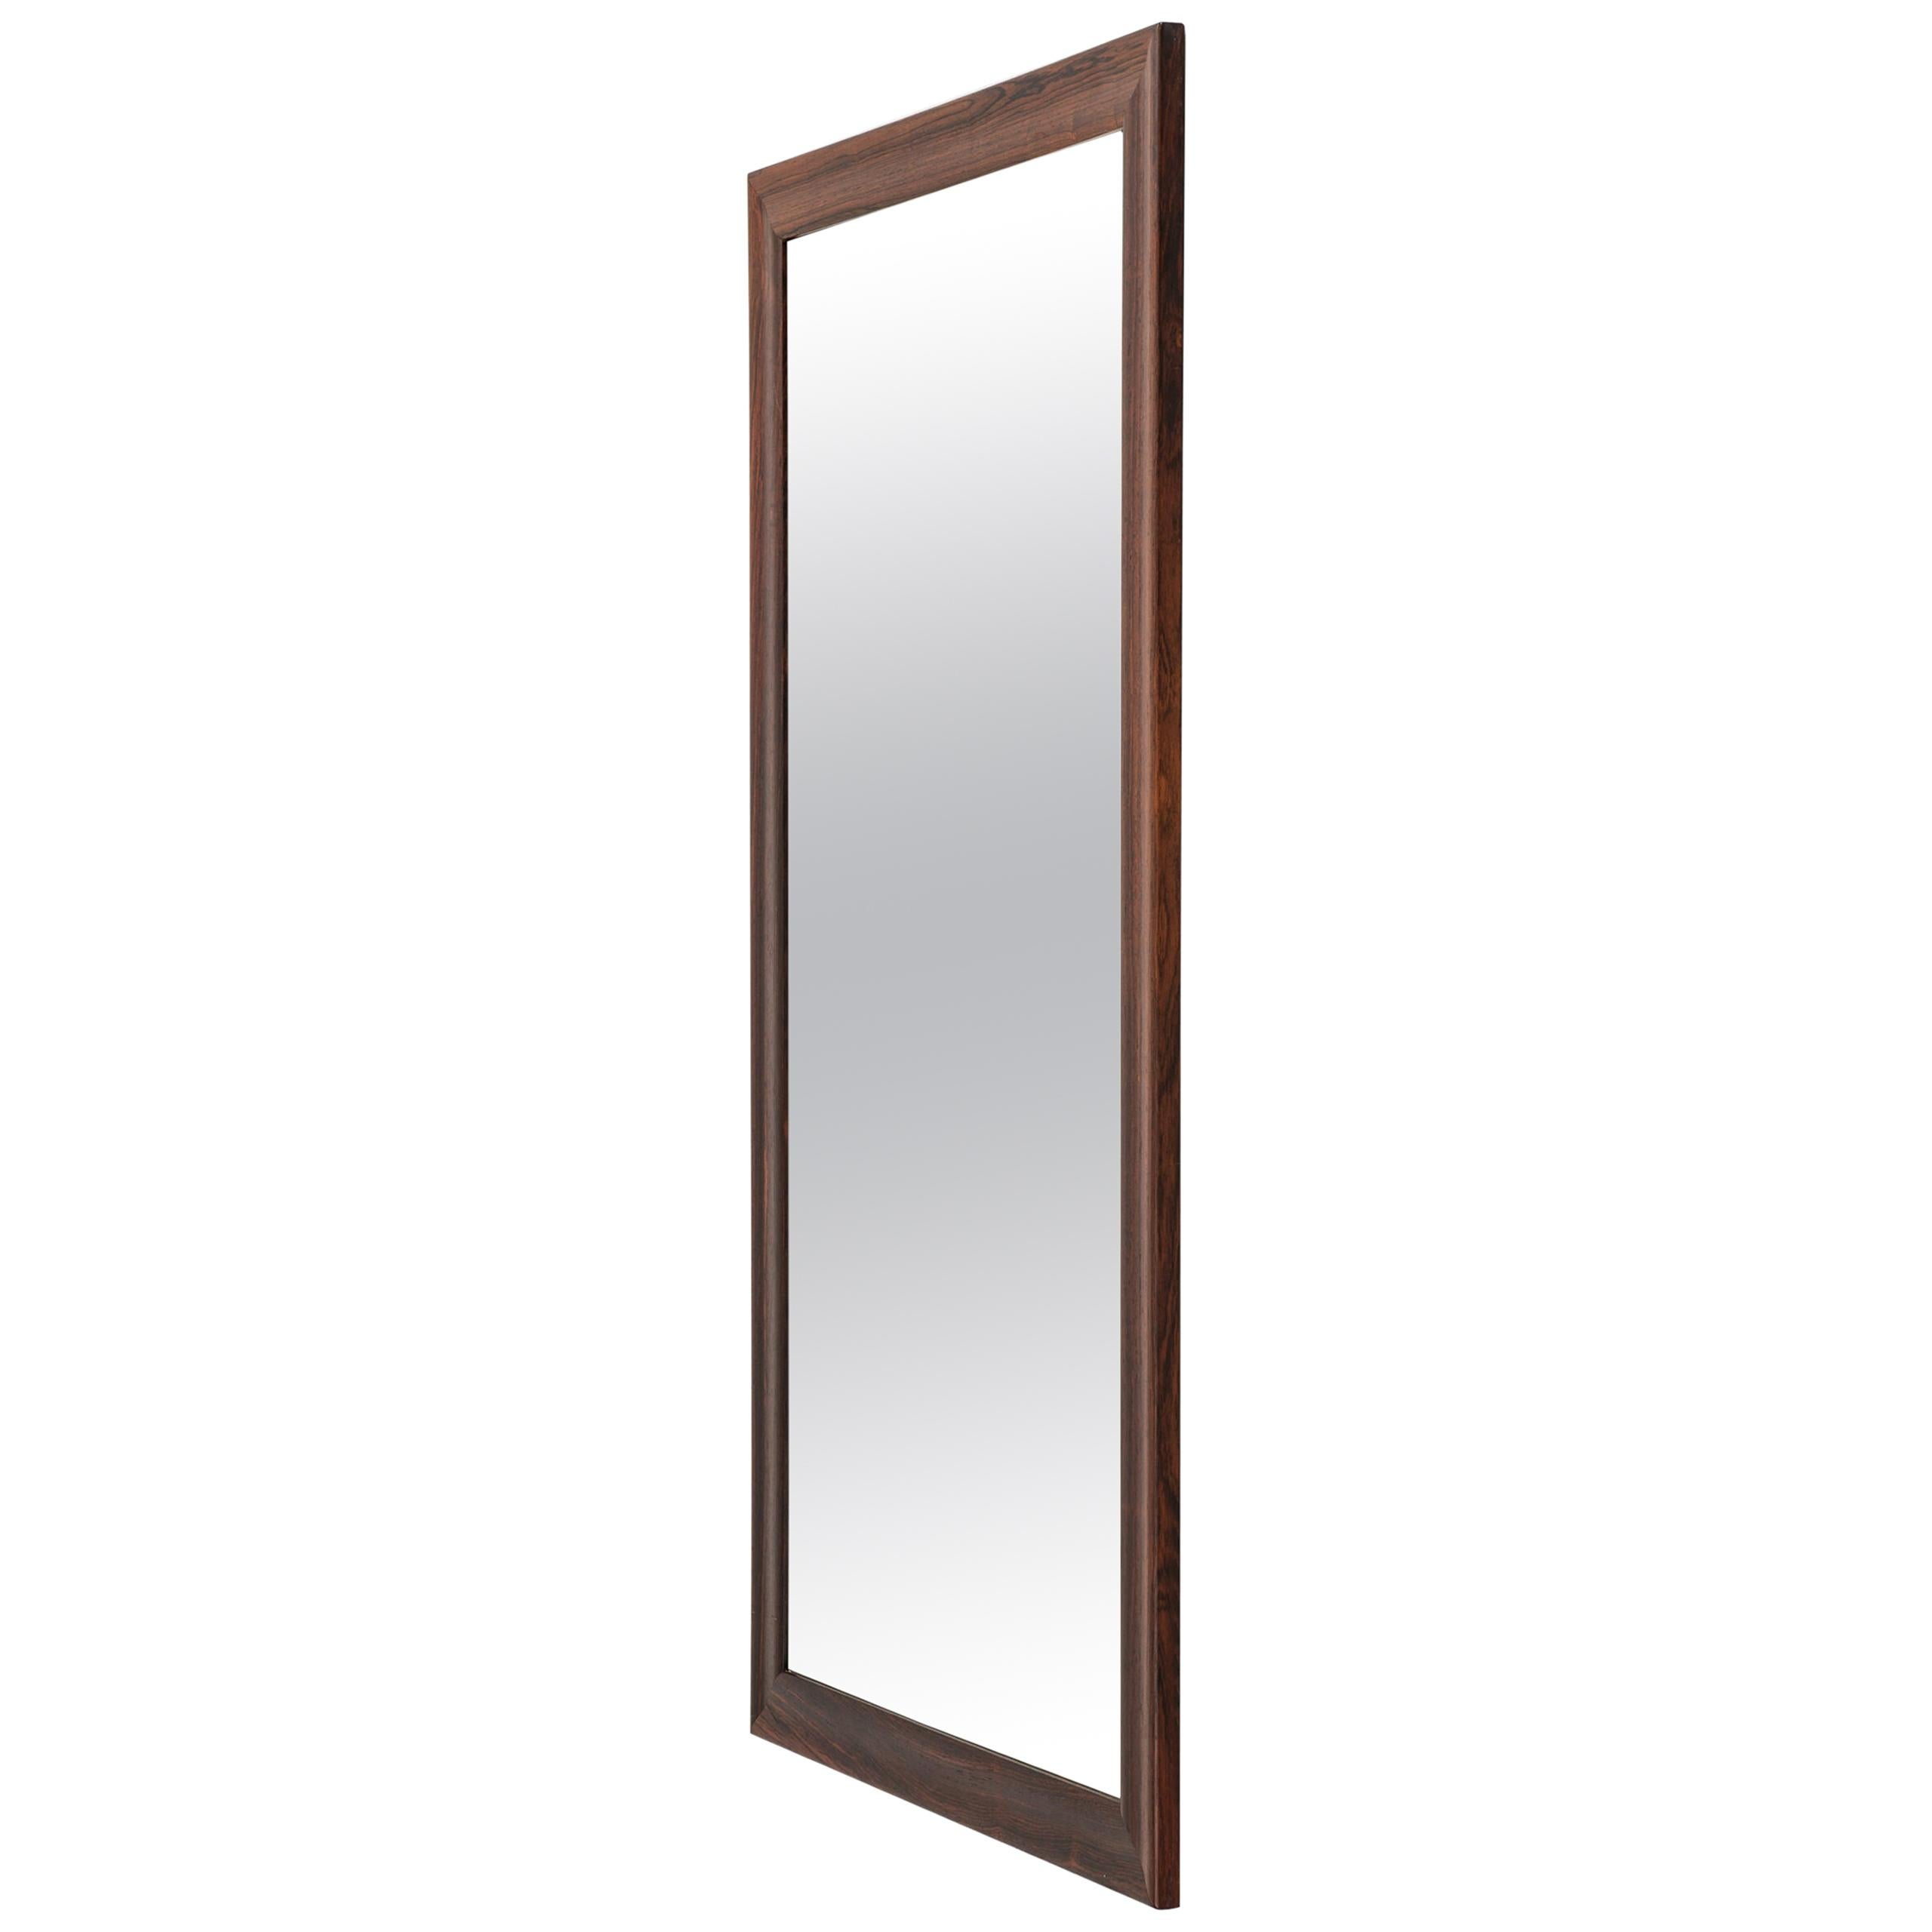 Mirror Produced by Ota in Sweden